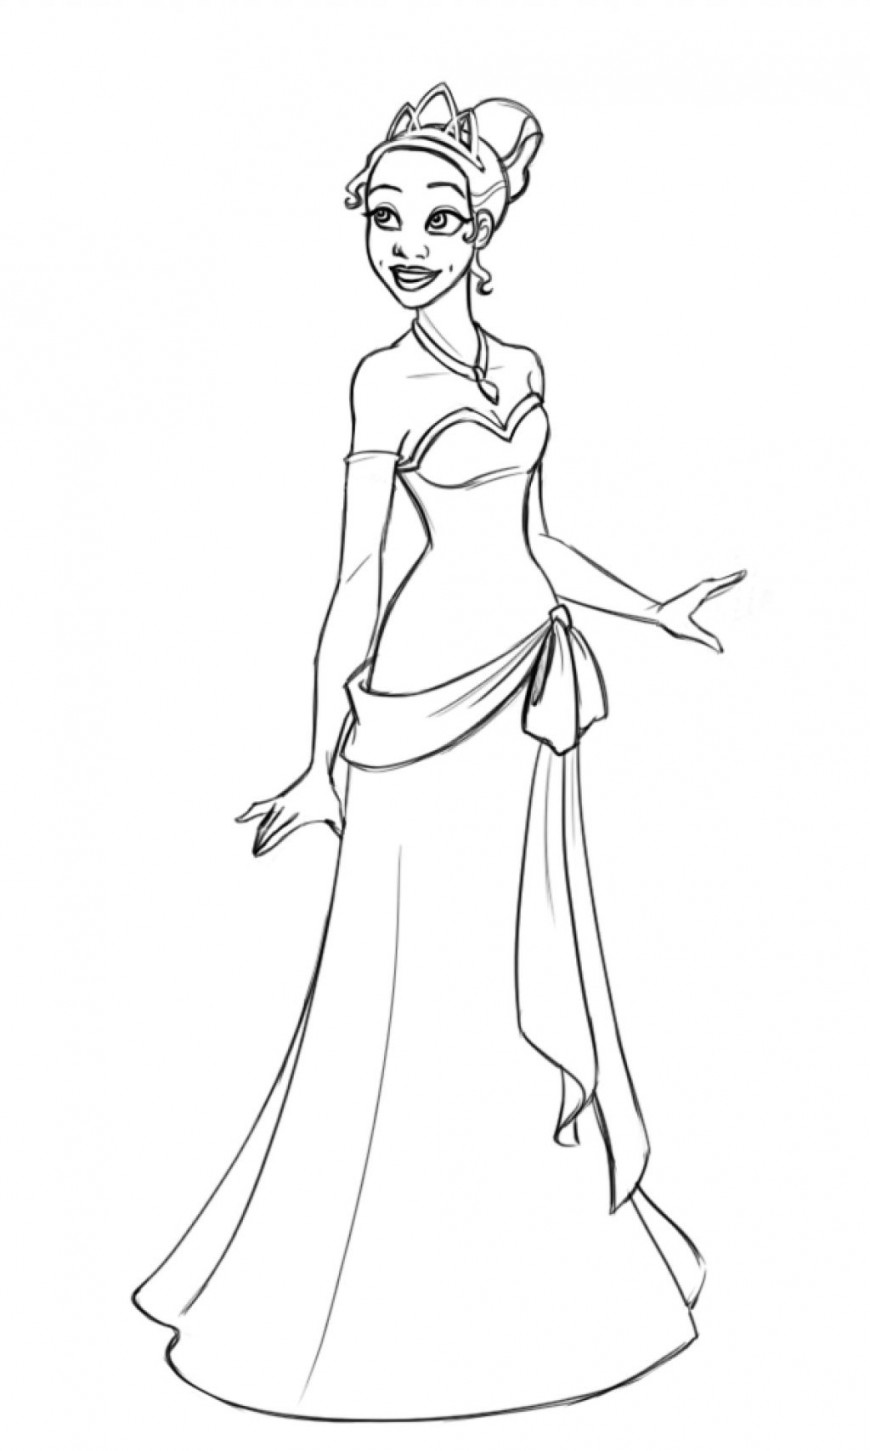 Disney Princess Coloring Pages Cinderella To Print